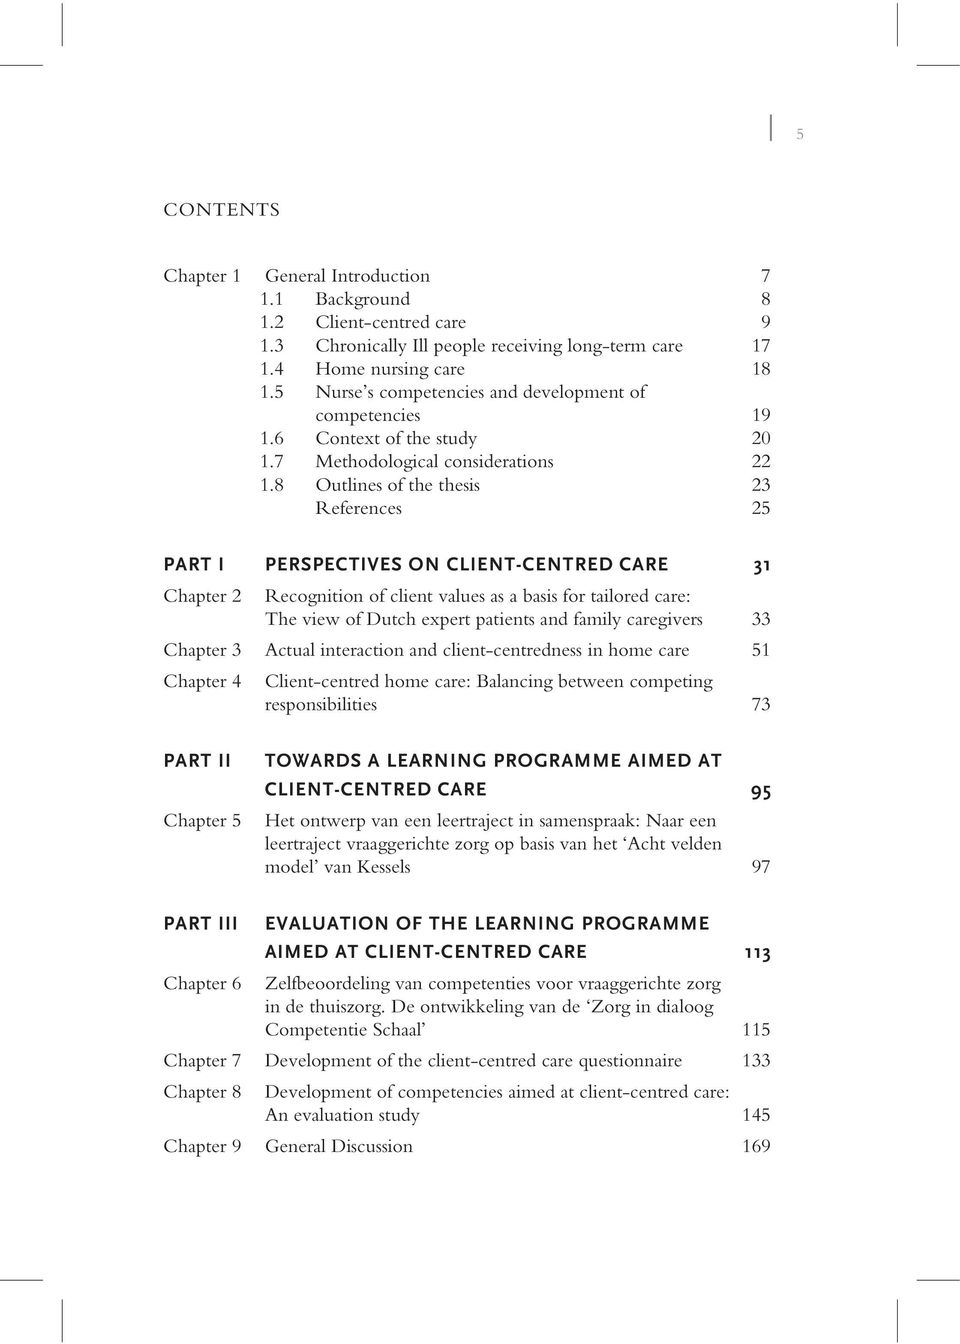 8 Outlines of the thesis 23 References 25 PART I PERSPECTIVES ON CLIENT-CENTRED CARE 31 Chapter 2 Recognition of client values as a basis for tailored care: The view of Dutch expert patients and